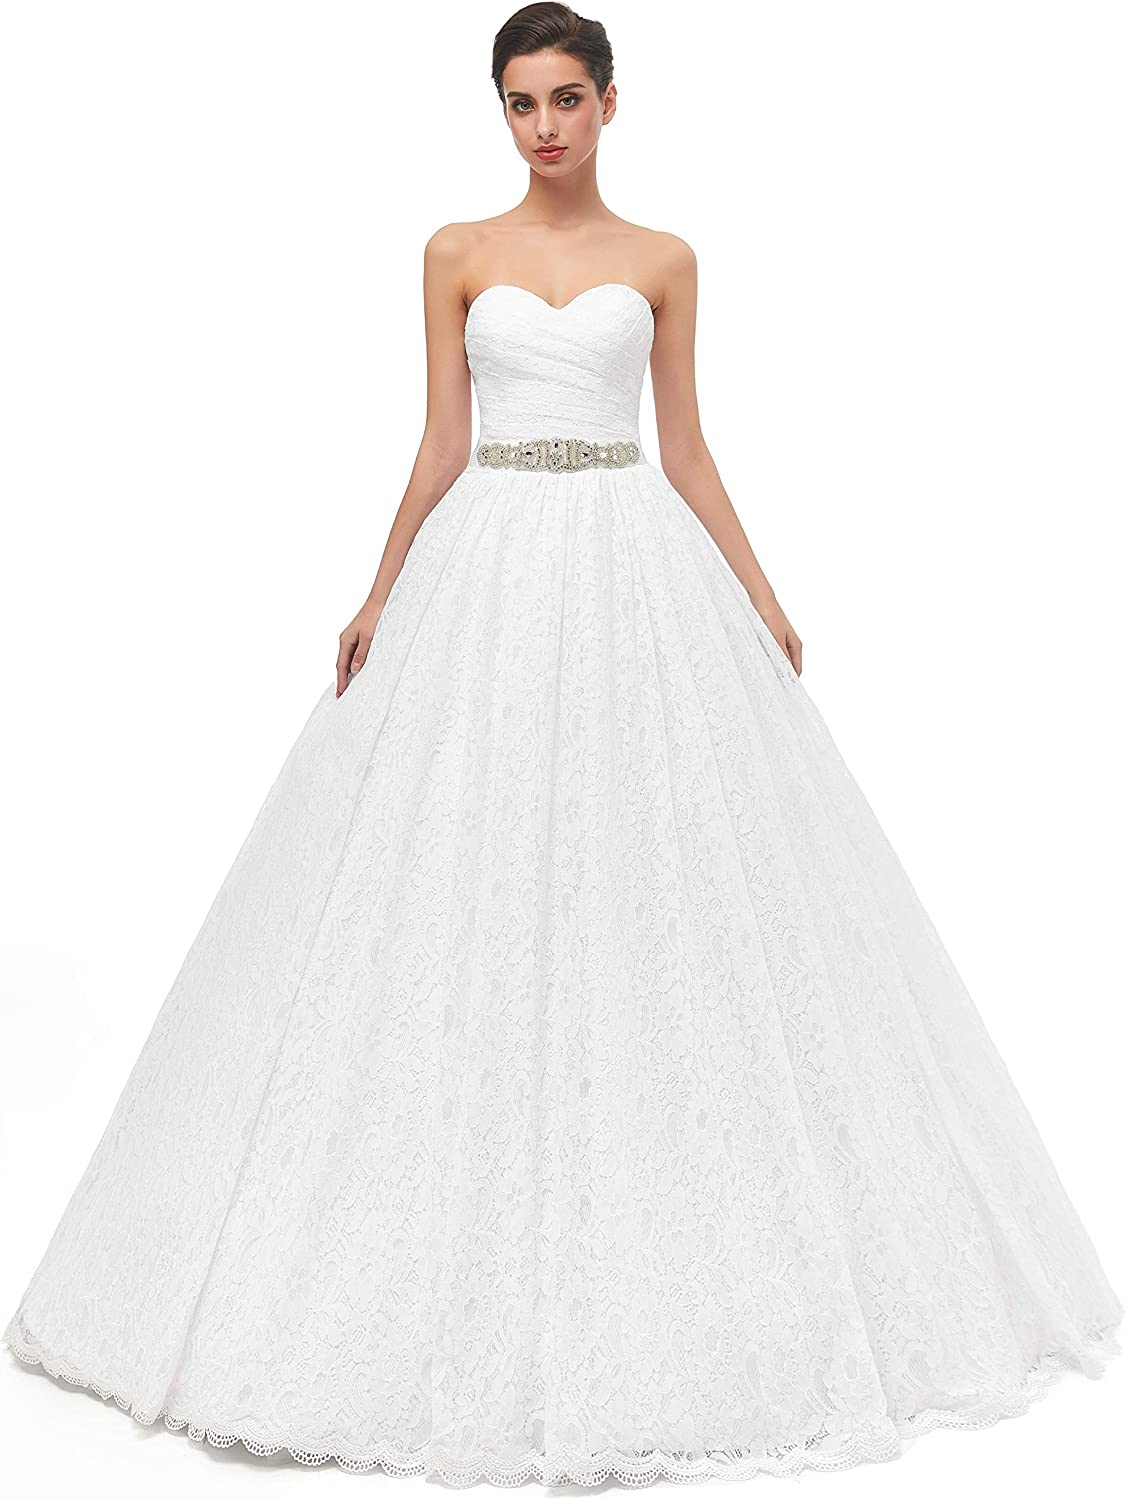 Likedpage Ranking TOP11 Women's Sweetheart Ball Gown Lace Bridal Wedding Dress Fashion